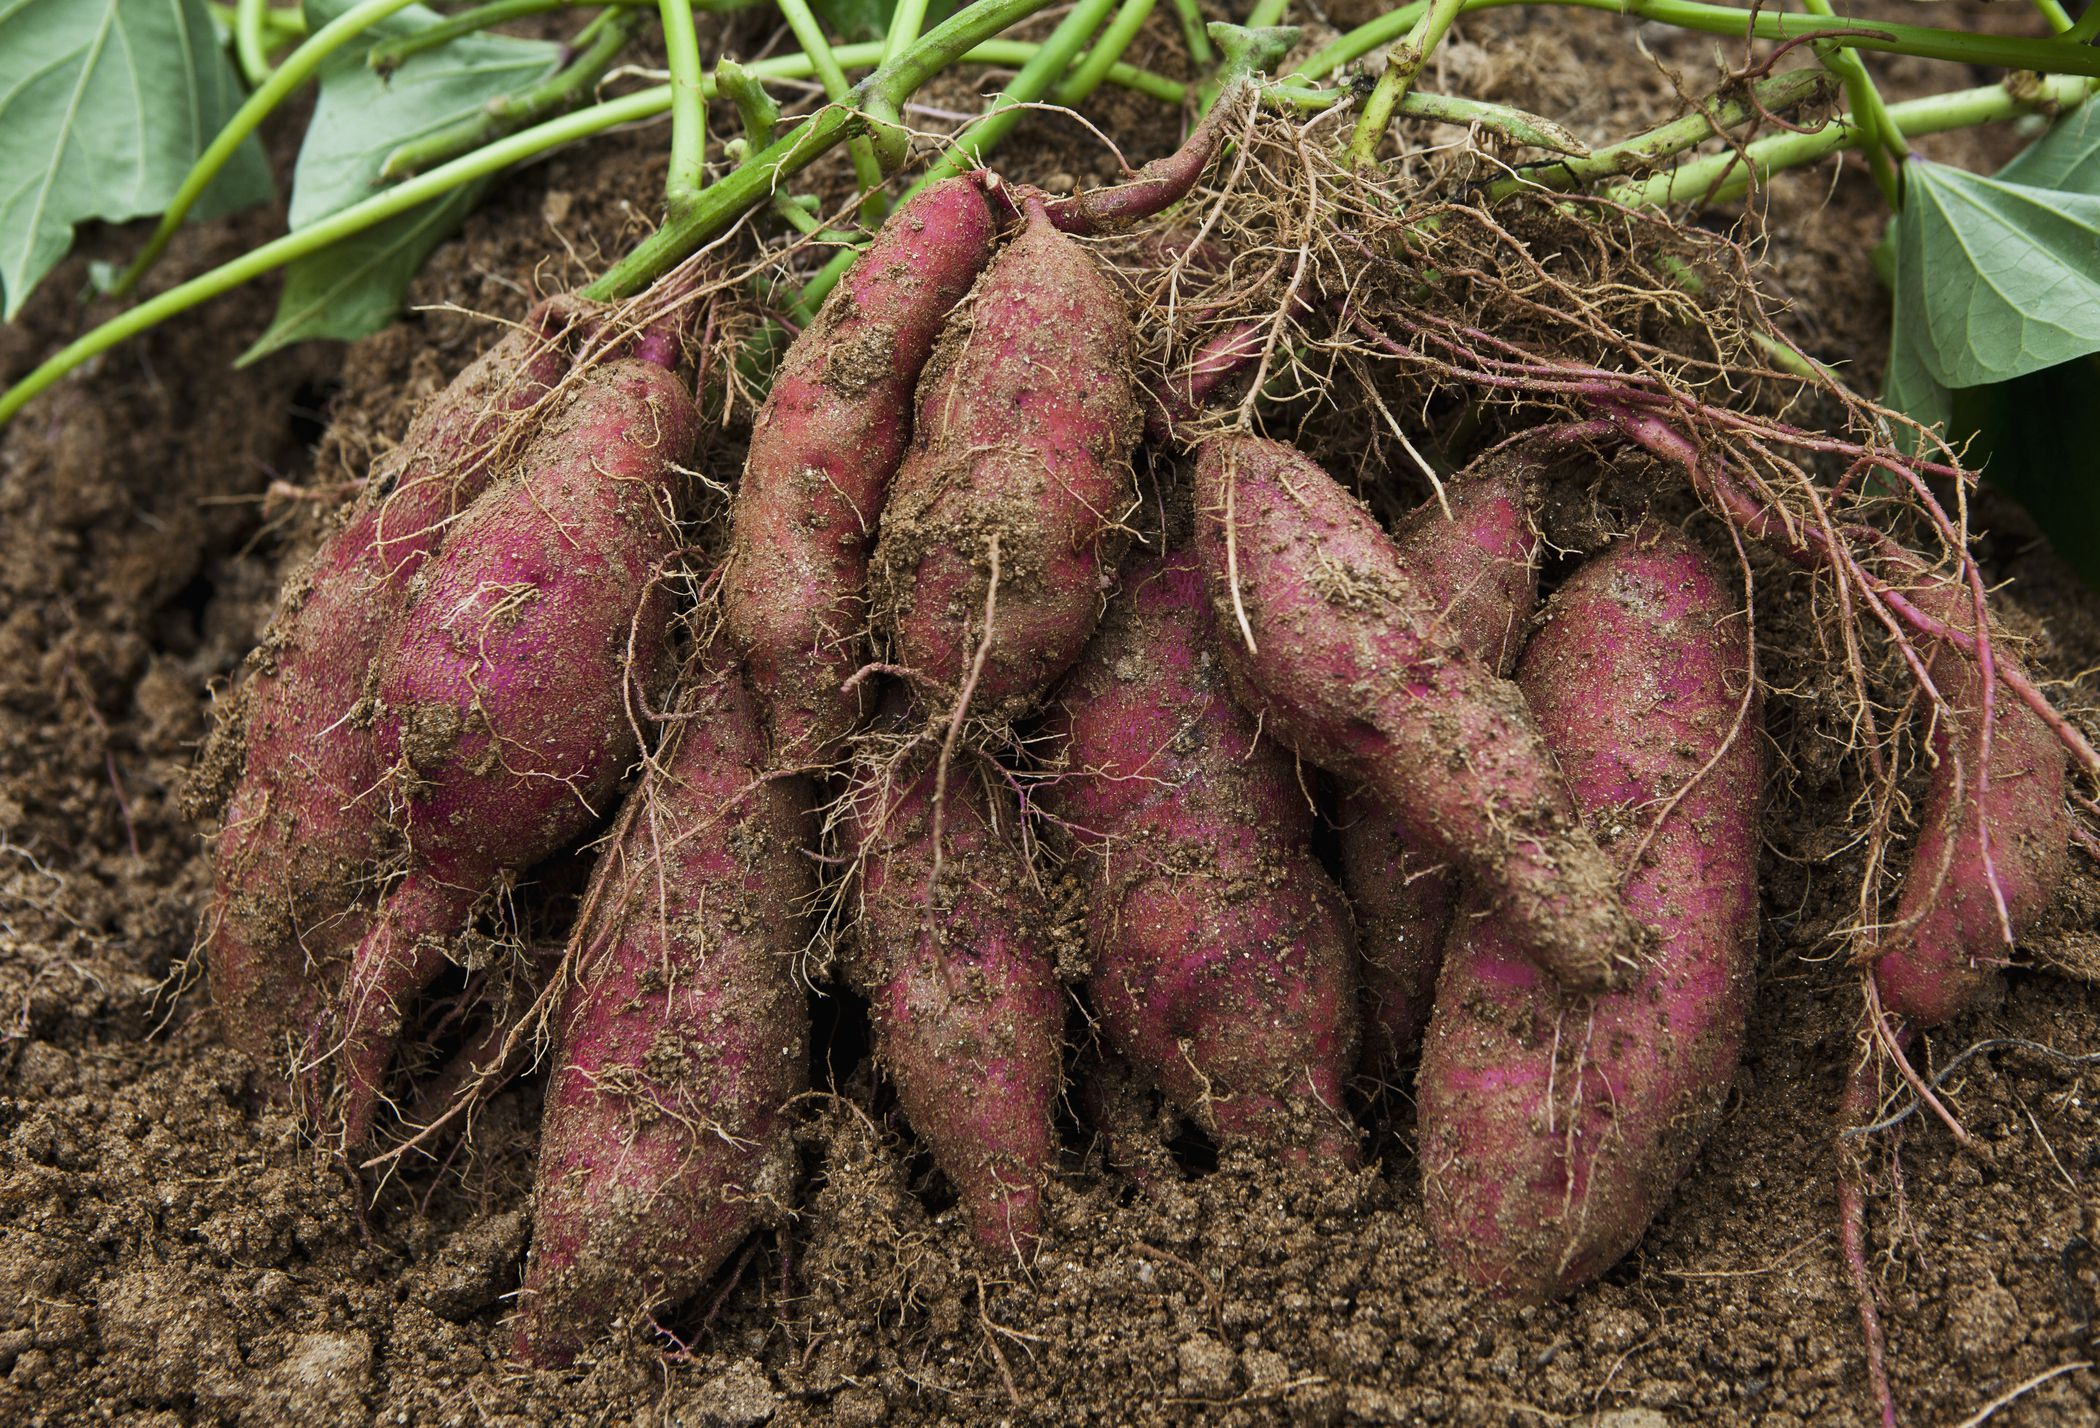 Weeds in flower beds with potato like roots - Weeds In Flower Beds With Potato Like Roots 18